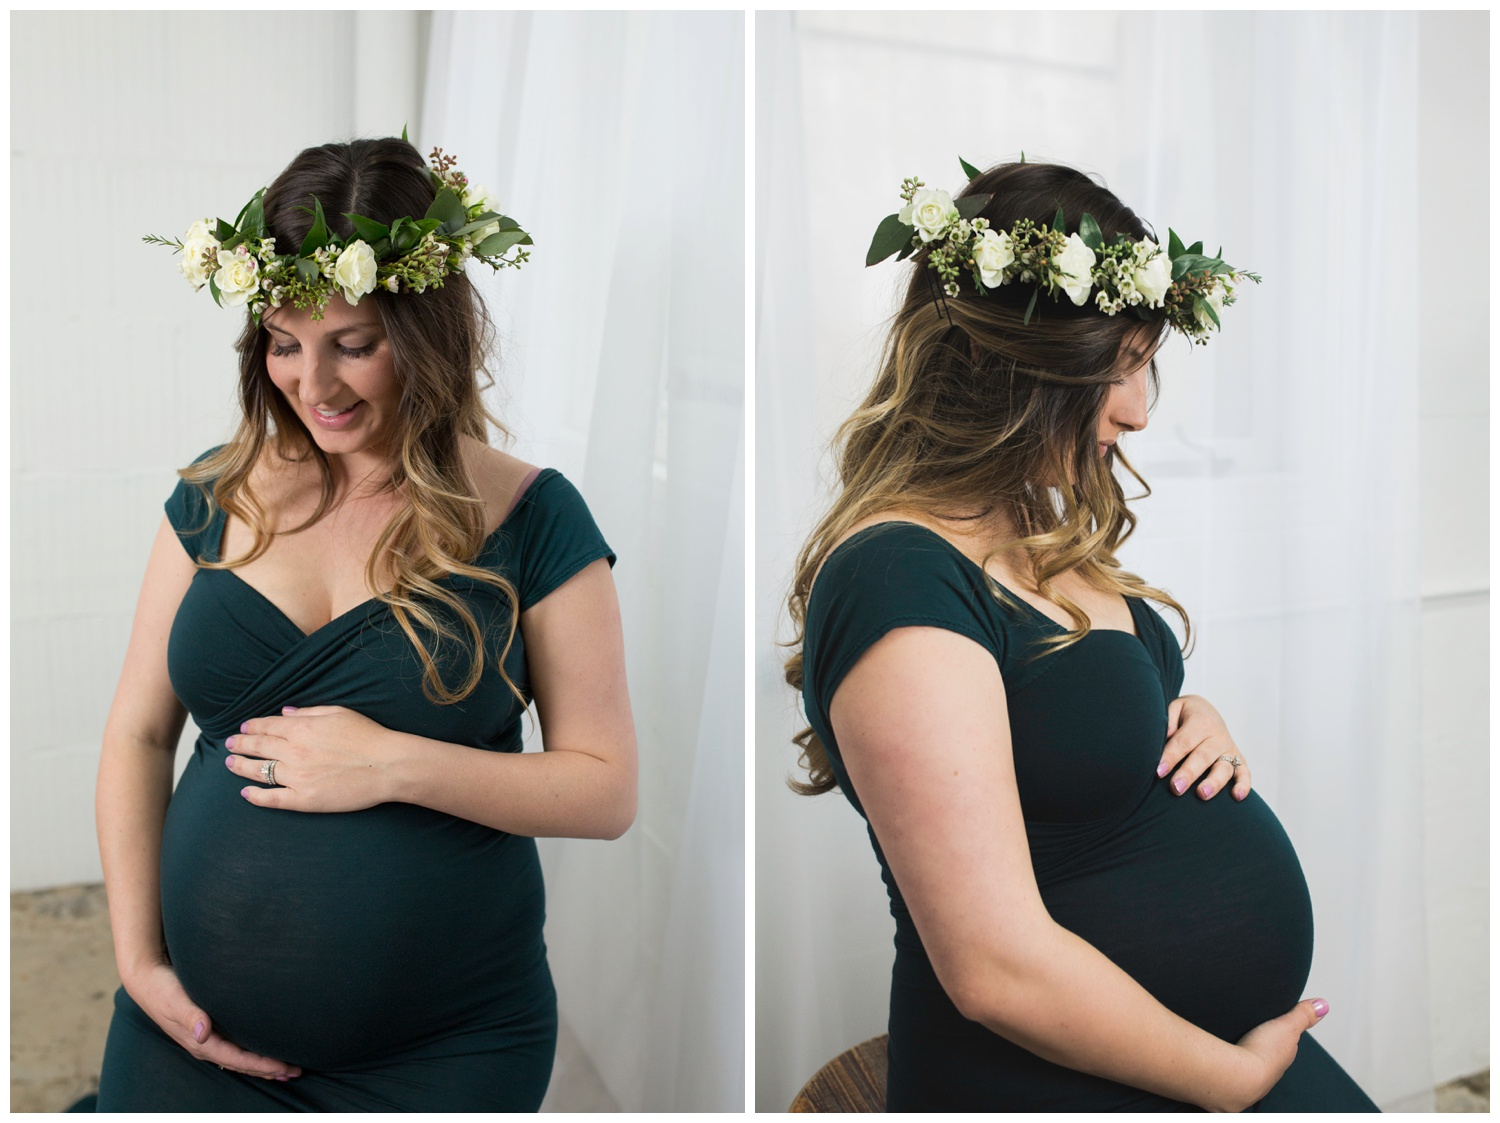 The image on the right is one of my favorites. . . Profile maternity shots get me every time! This Mom couldn't be more stunning!